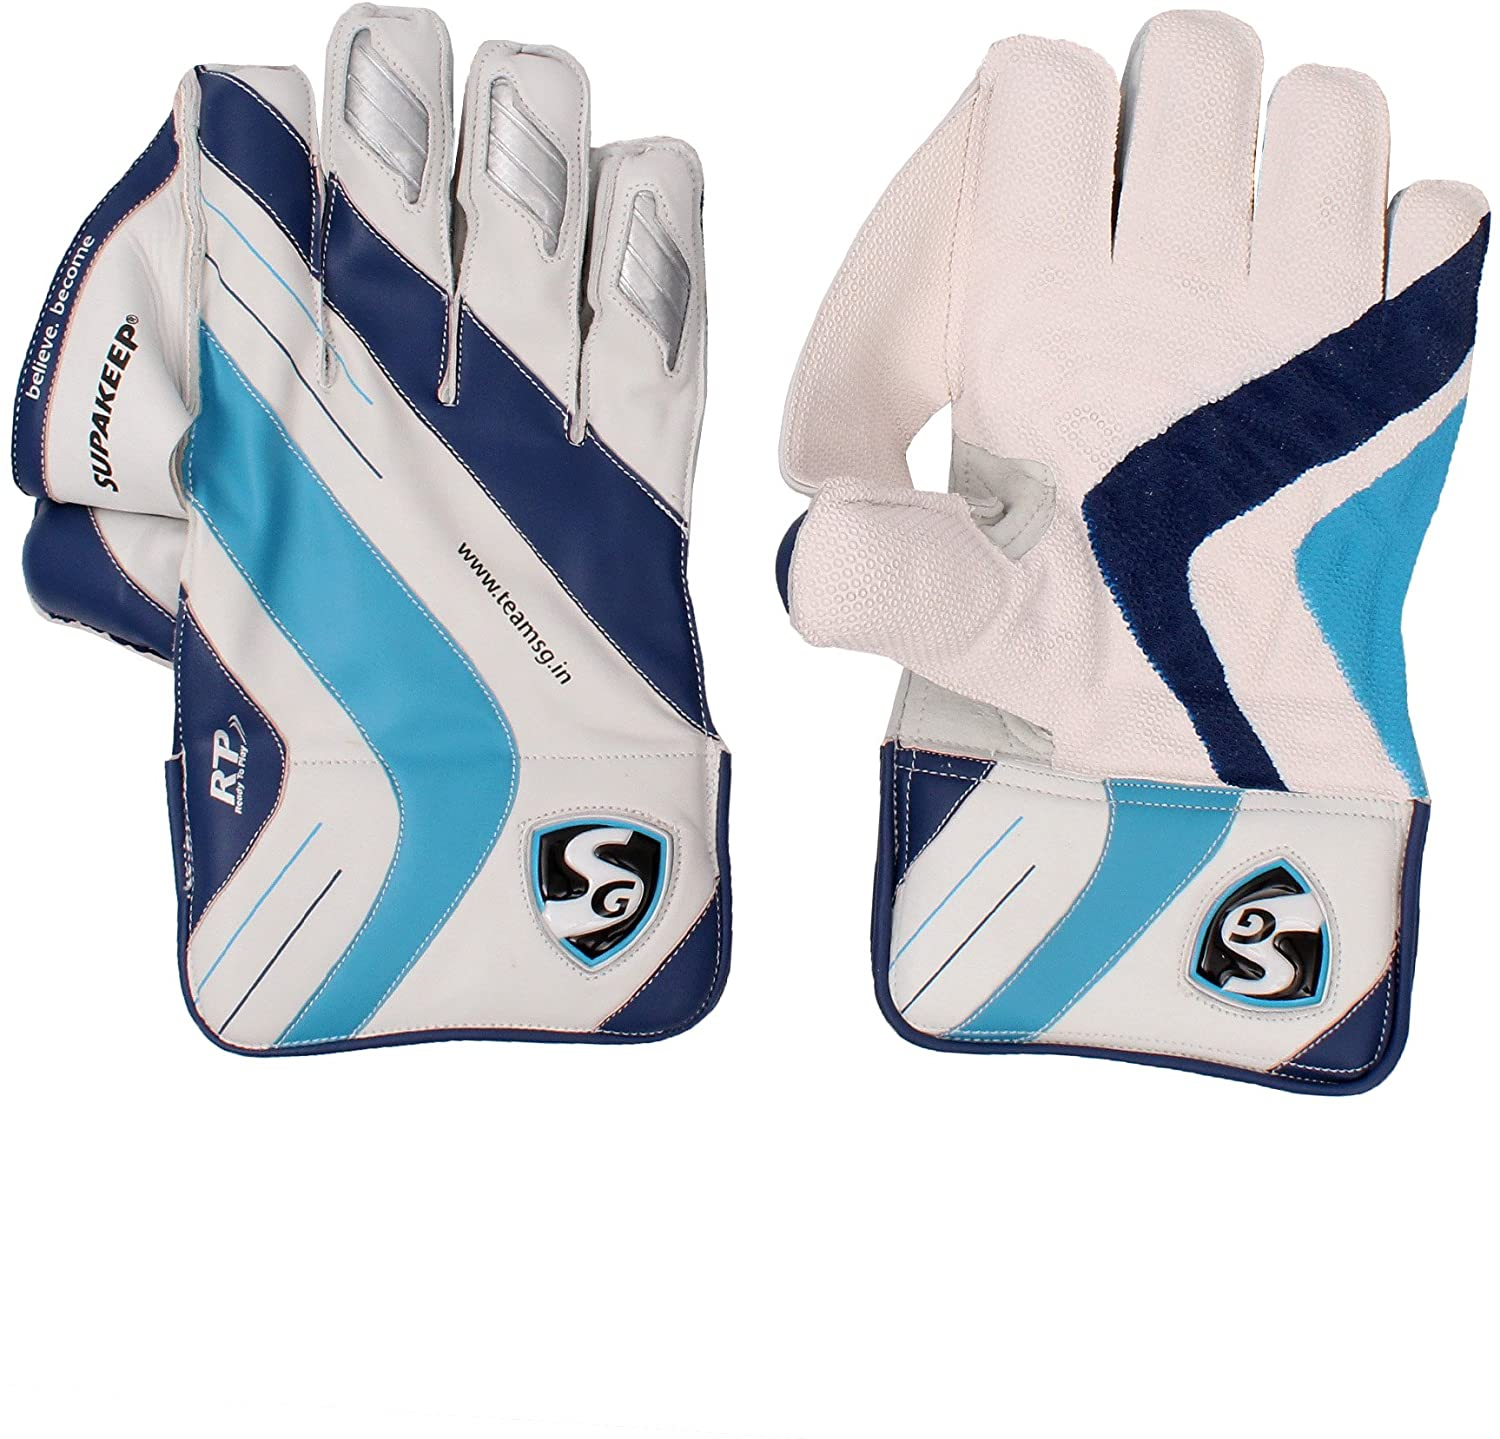 SG Club Youth Wicket Keeping Gloves Size